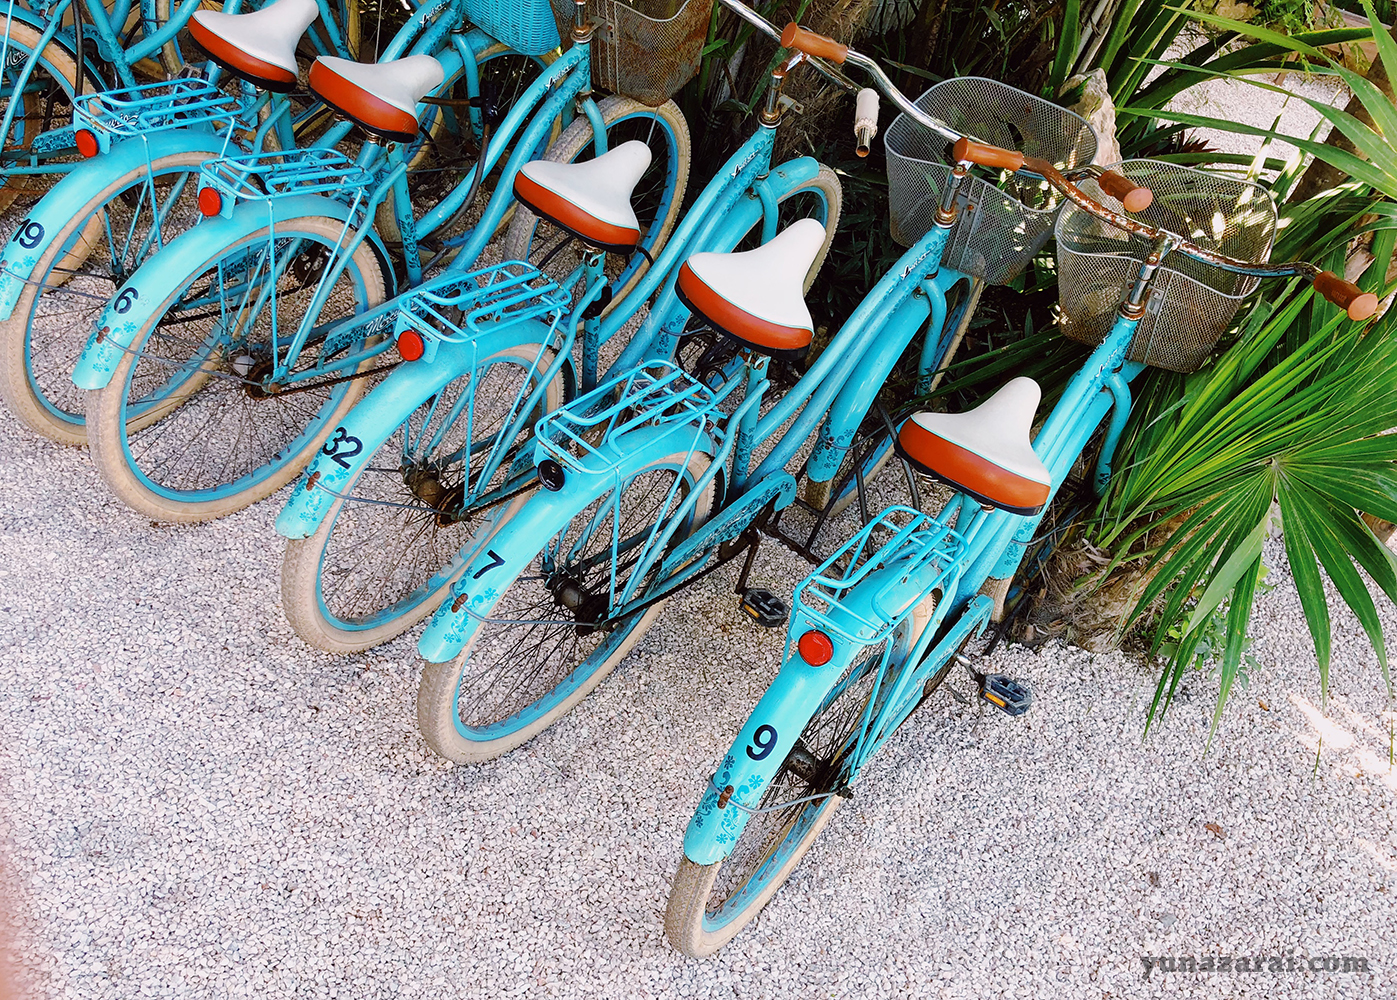 Bikes for rental at Coco Tulum